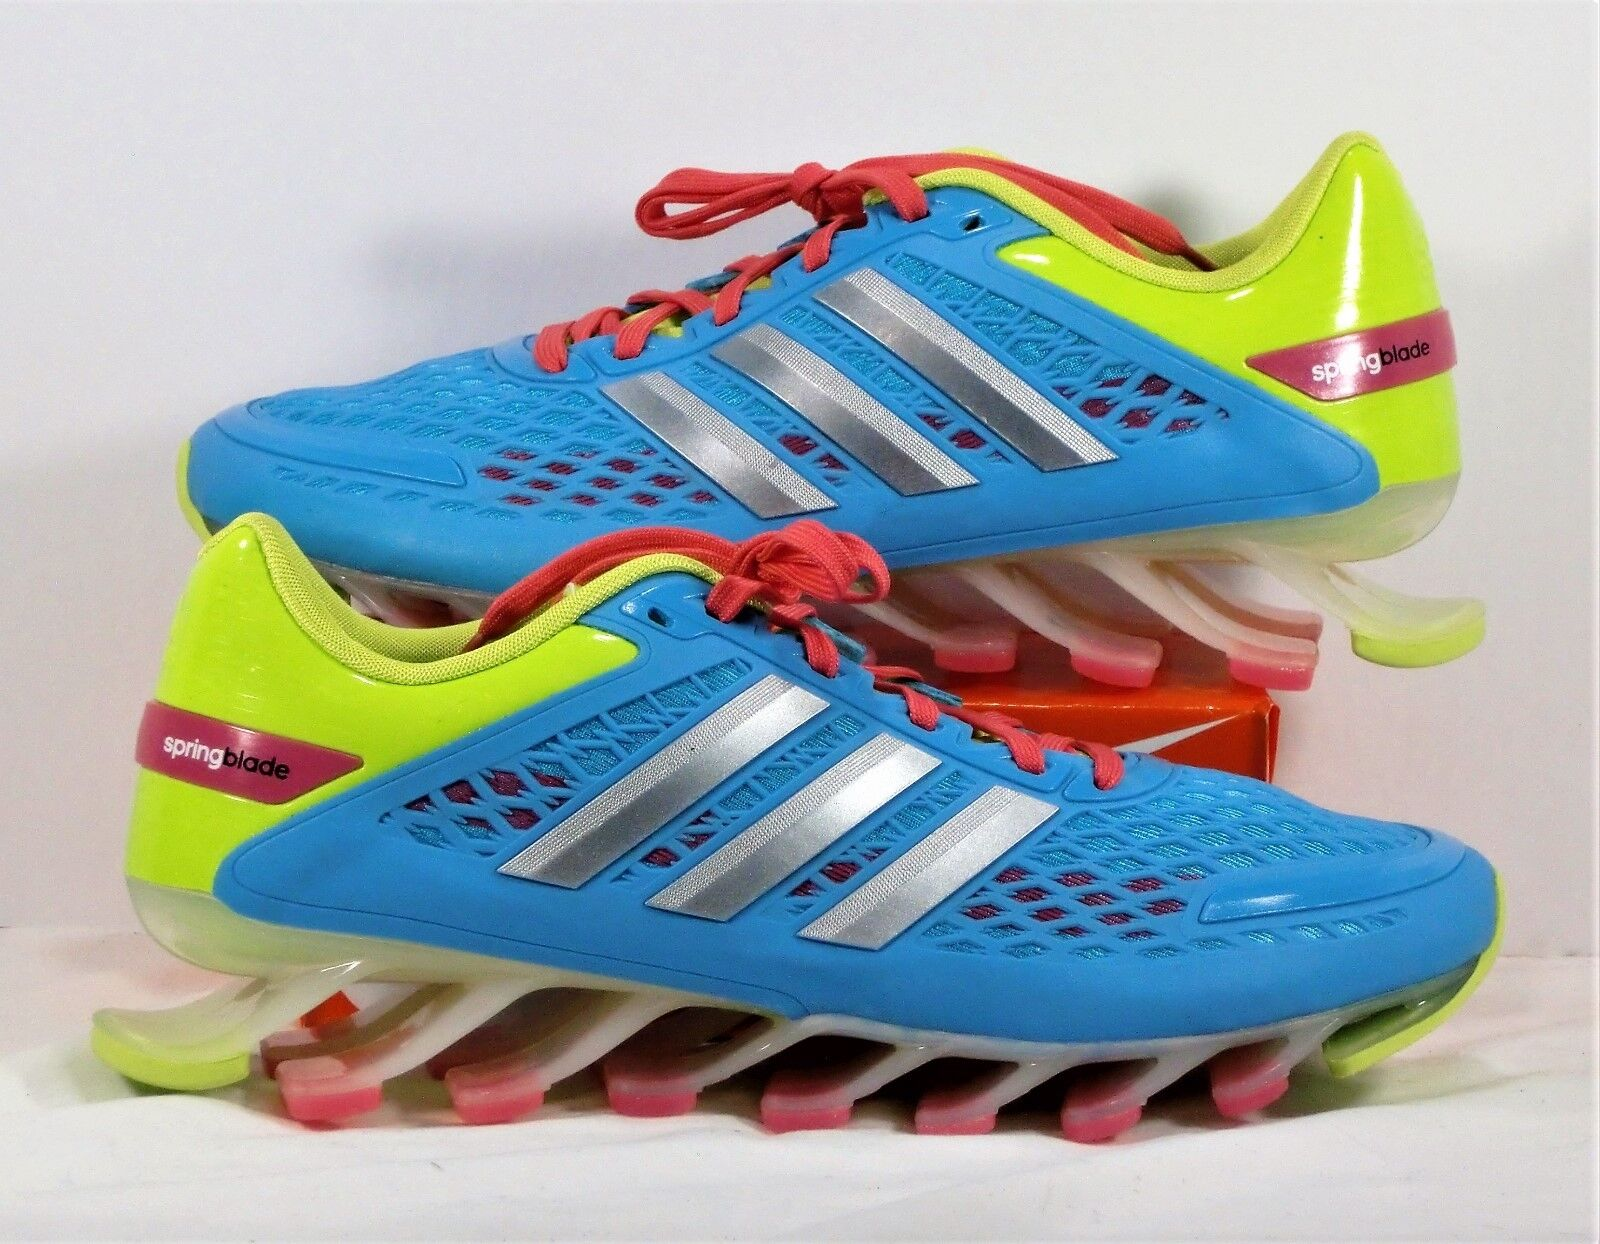 Adidas Springblade Razor bluee & Lime Green & Pink Running shoes Sz 6.5 NEW M21921